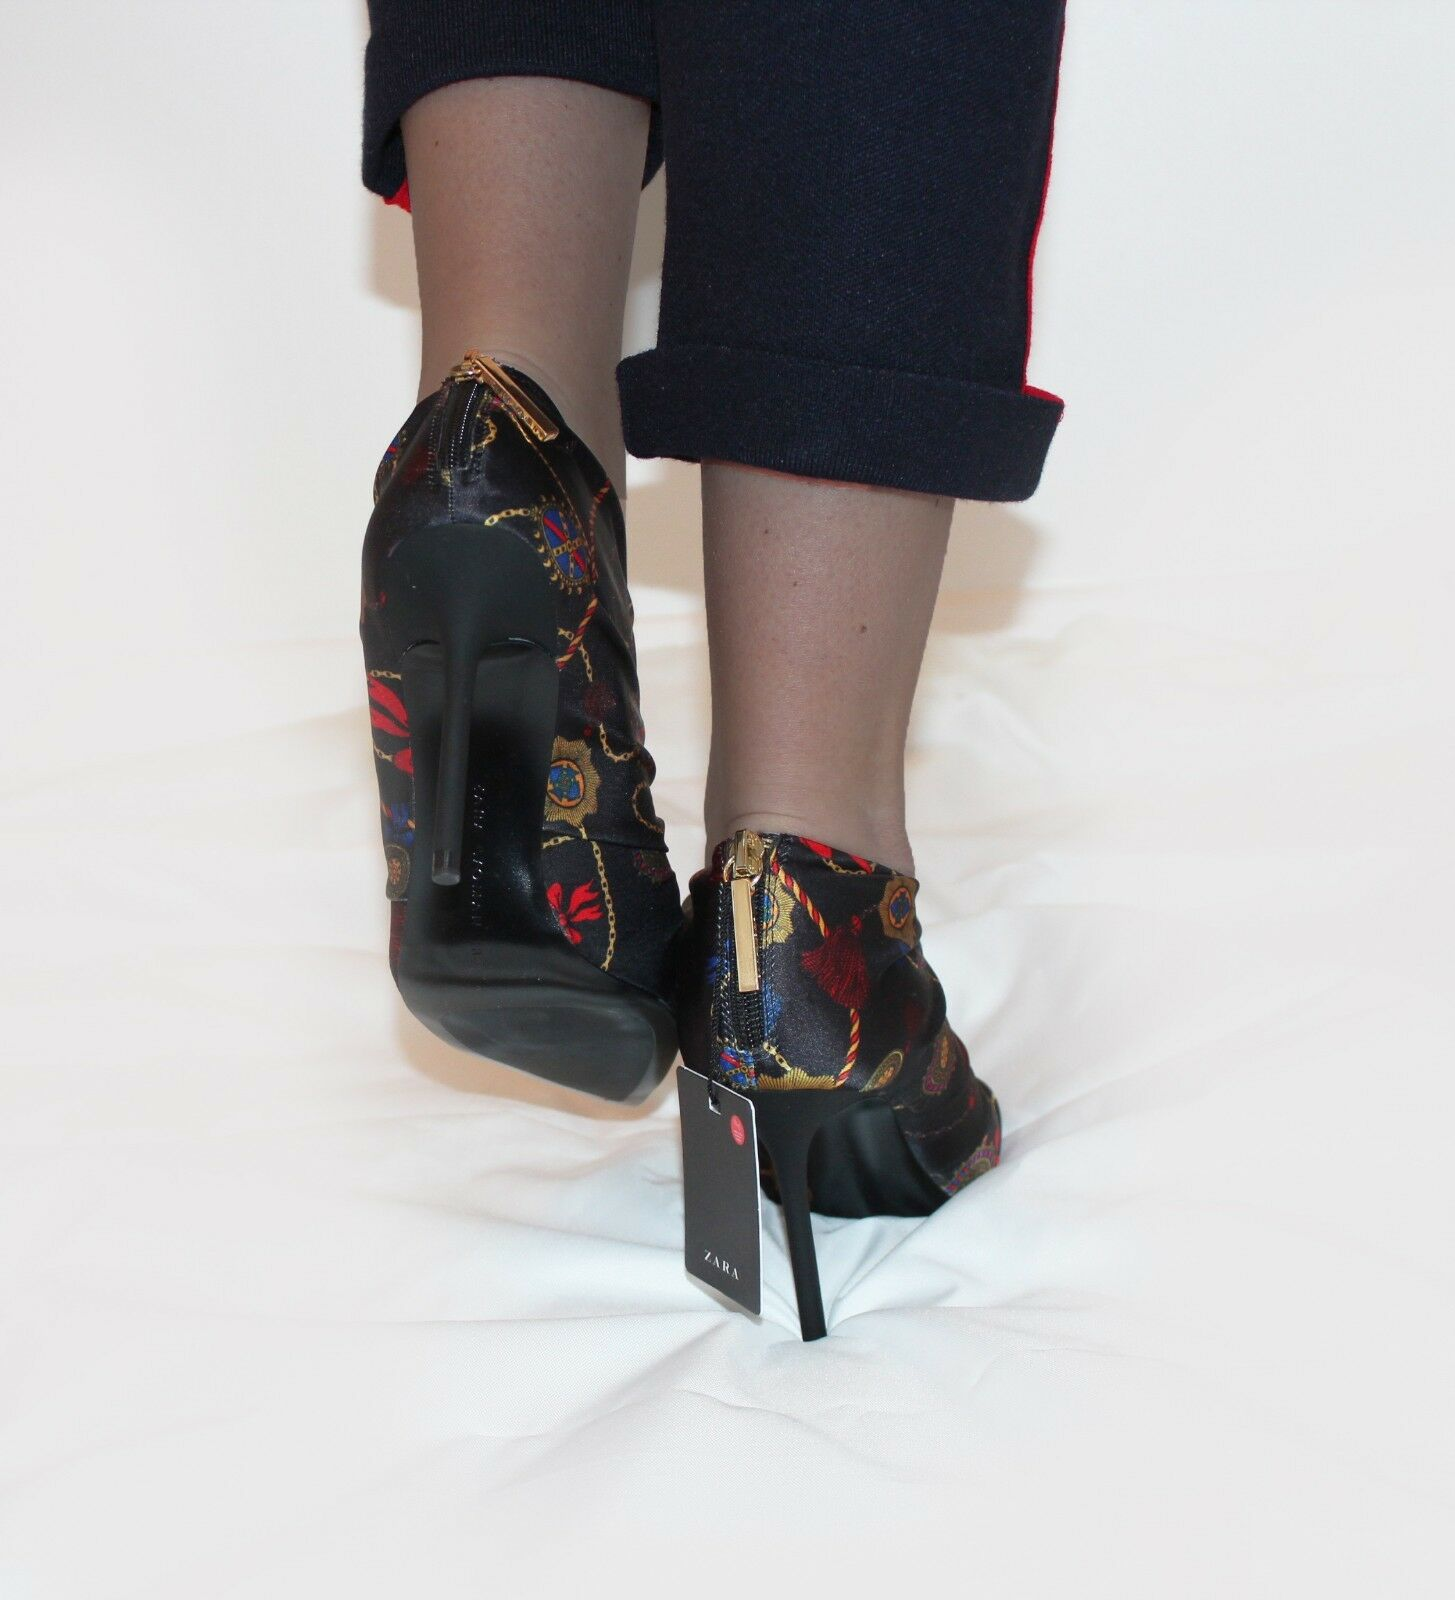 ZARA Printed Hight Hight Hight Heel Ankle Boots With Gathering UK 3  EU 36 Casual Formal 9fd6c9